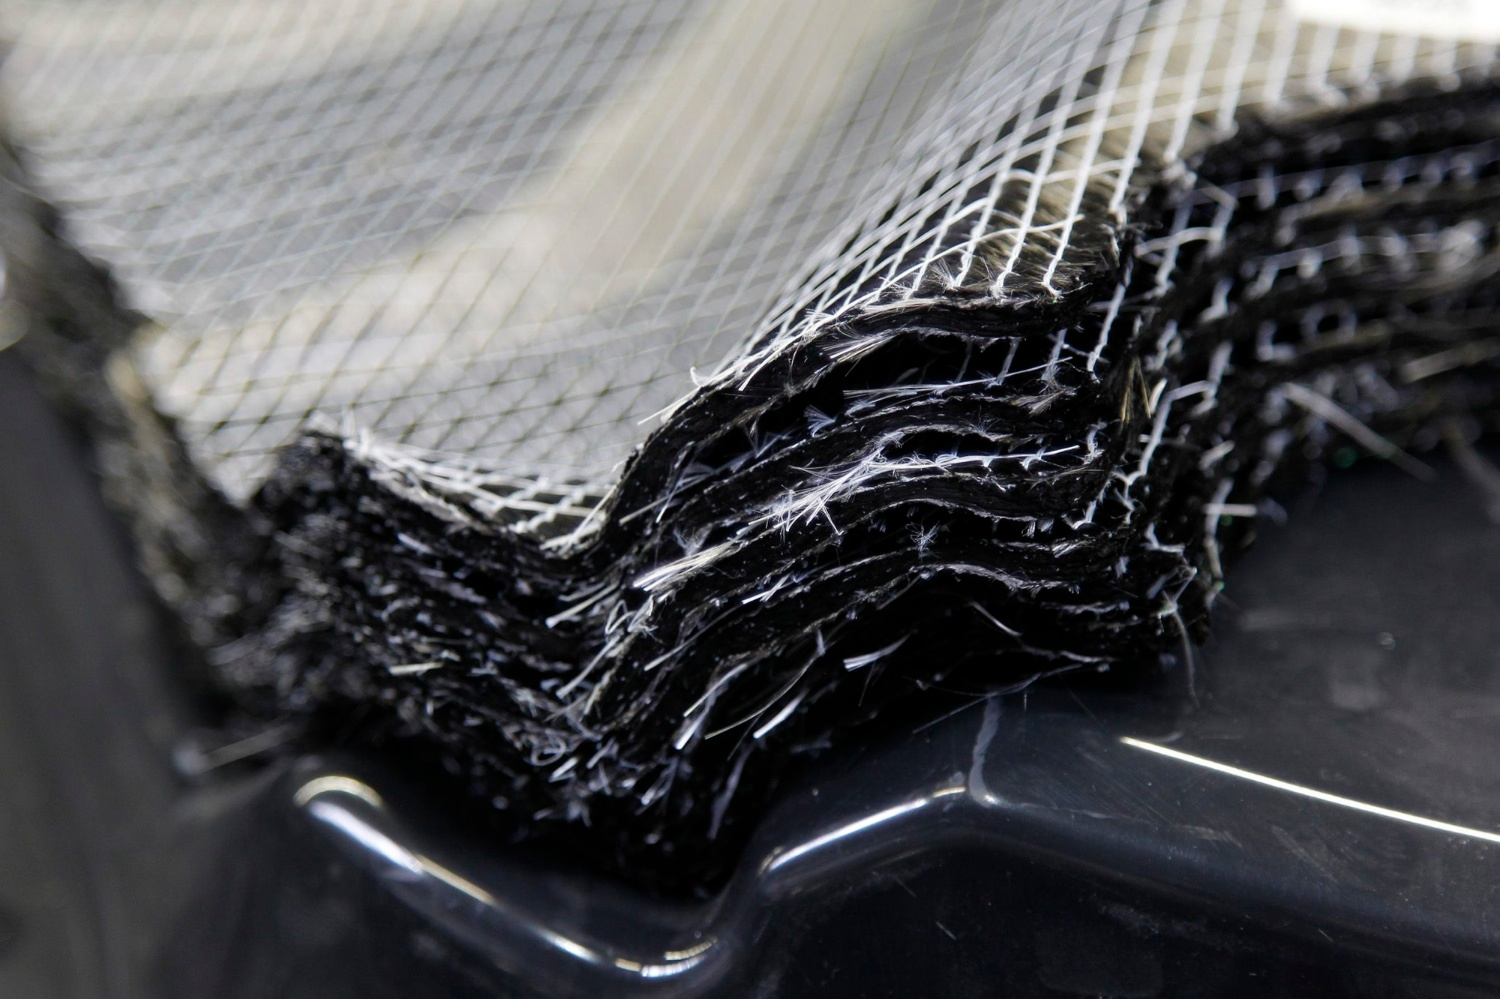 Toray And Toyota Team Up To Promote Carbon Fibre Recycling